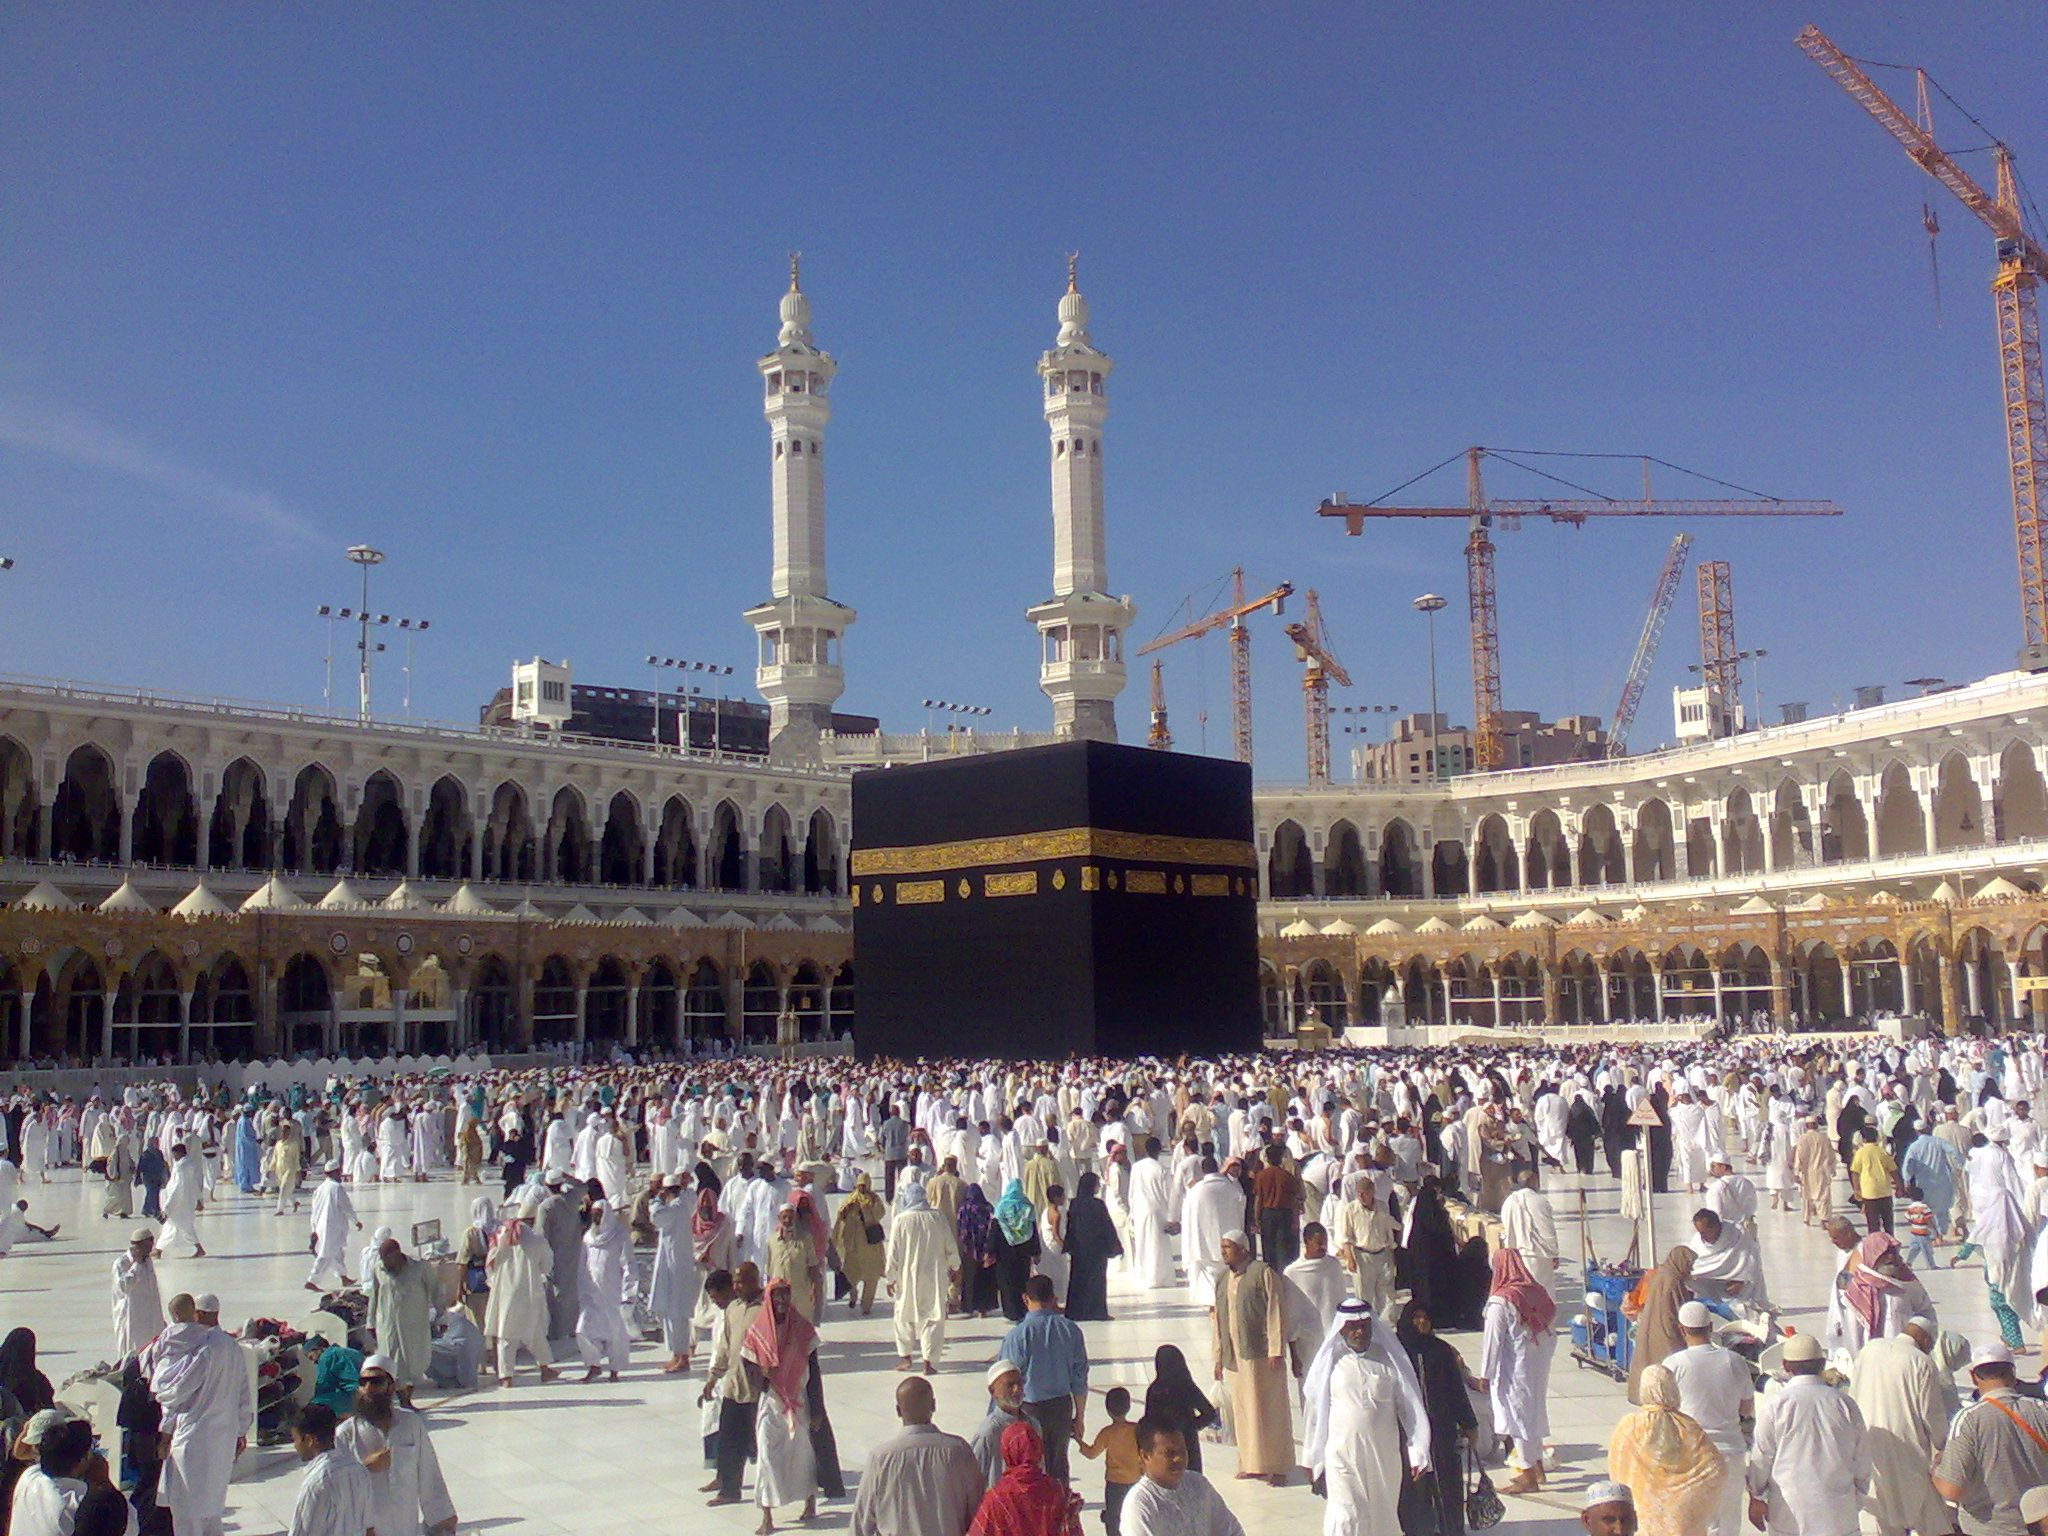 Khana Kaba Beautiful Wallpapers And Pictures Hd Wallpapers In 2020 Beautiful Wallpapers Kaba Beautiful Wallpaper Pictures